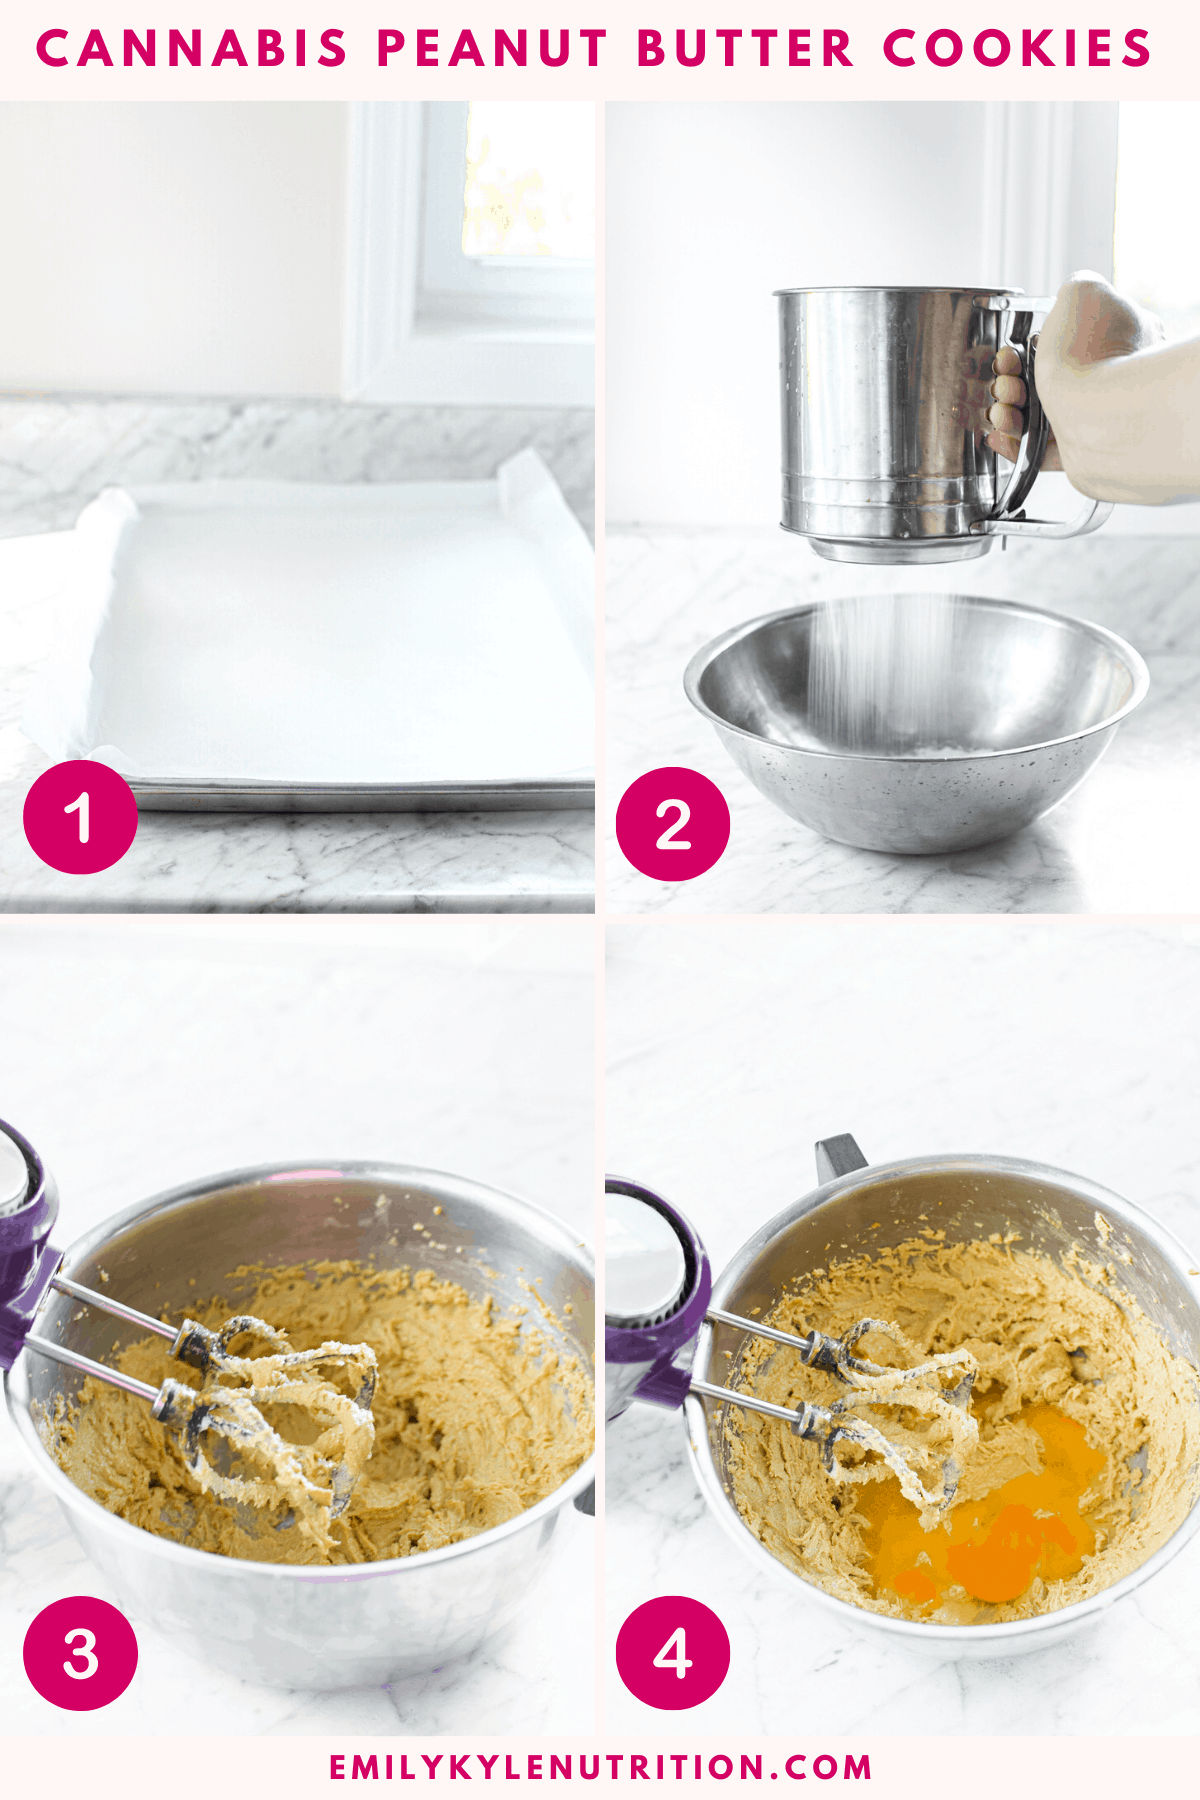 A 4 step image collage of the first four steps in making cannabis peanut butter cookies including a baking sheet, sifting the flour, creaming the butter and peanut butter and adding the eggs